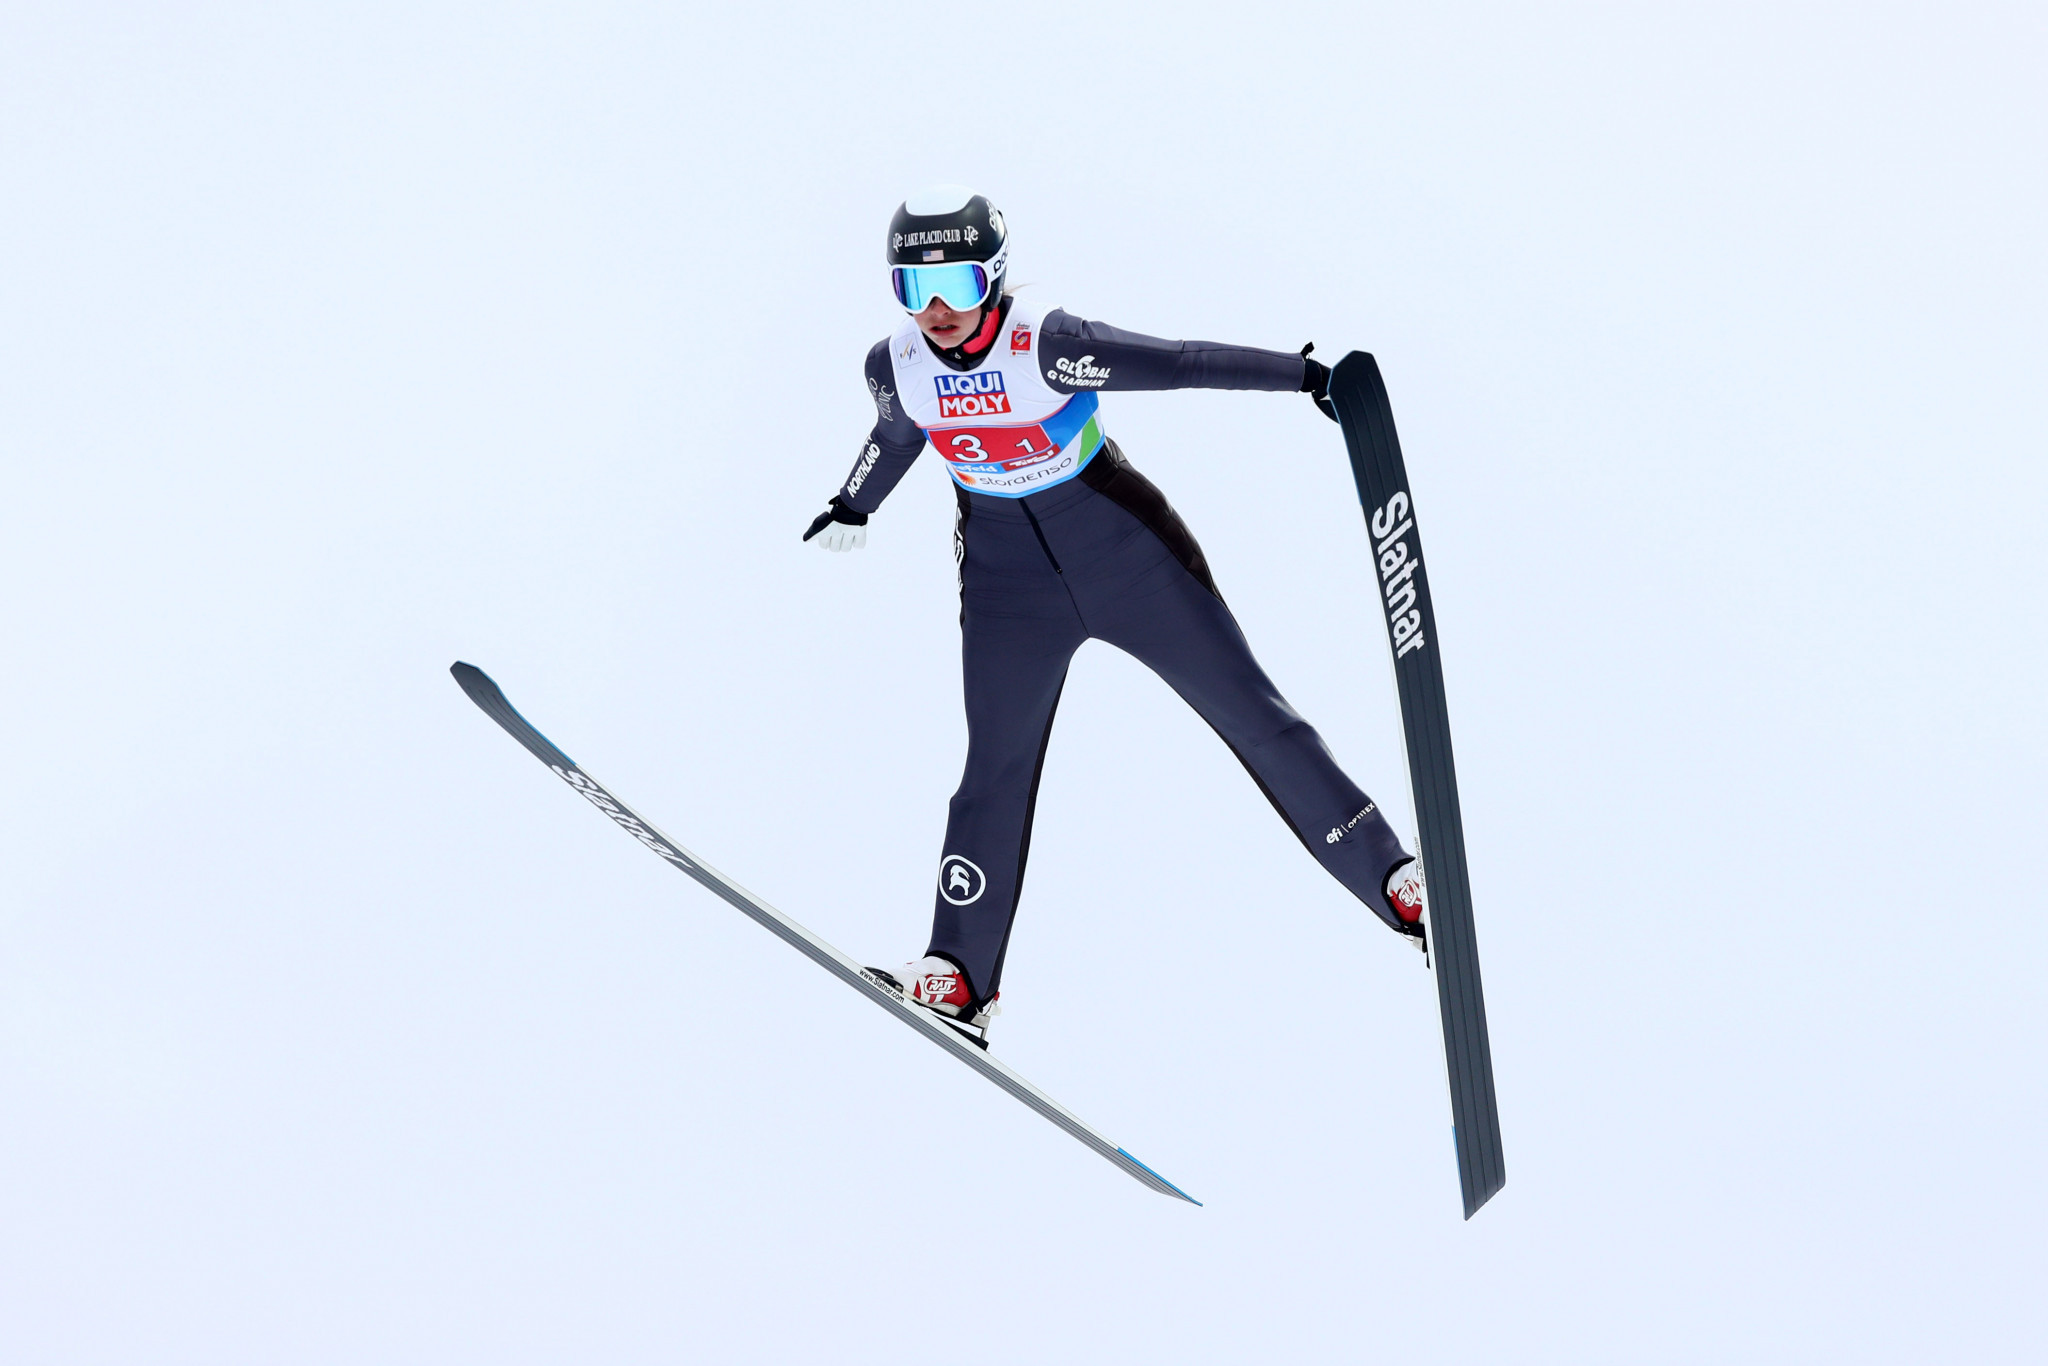 USA Nordic launches build-up to Beijing 2022 with National Championships